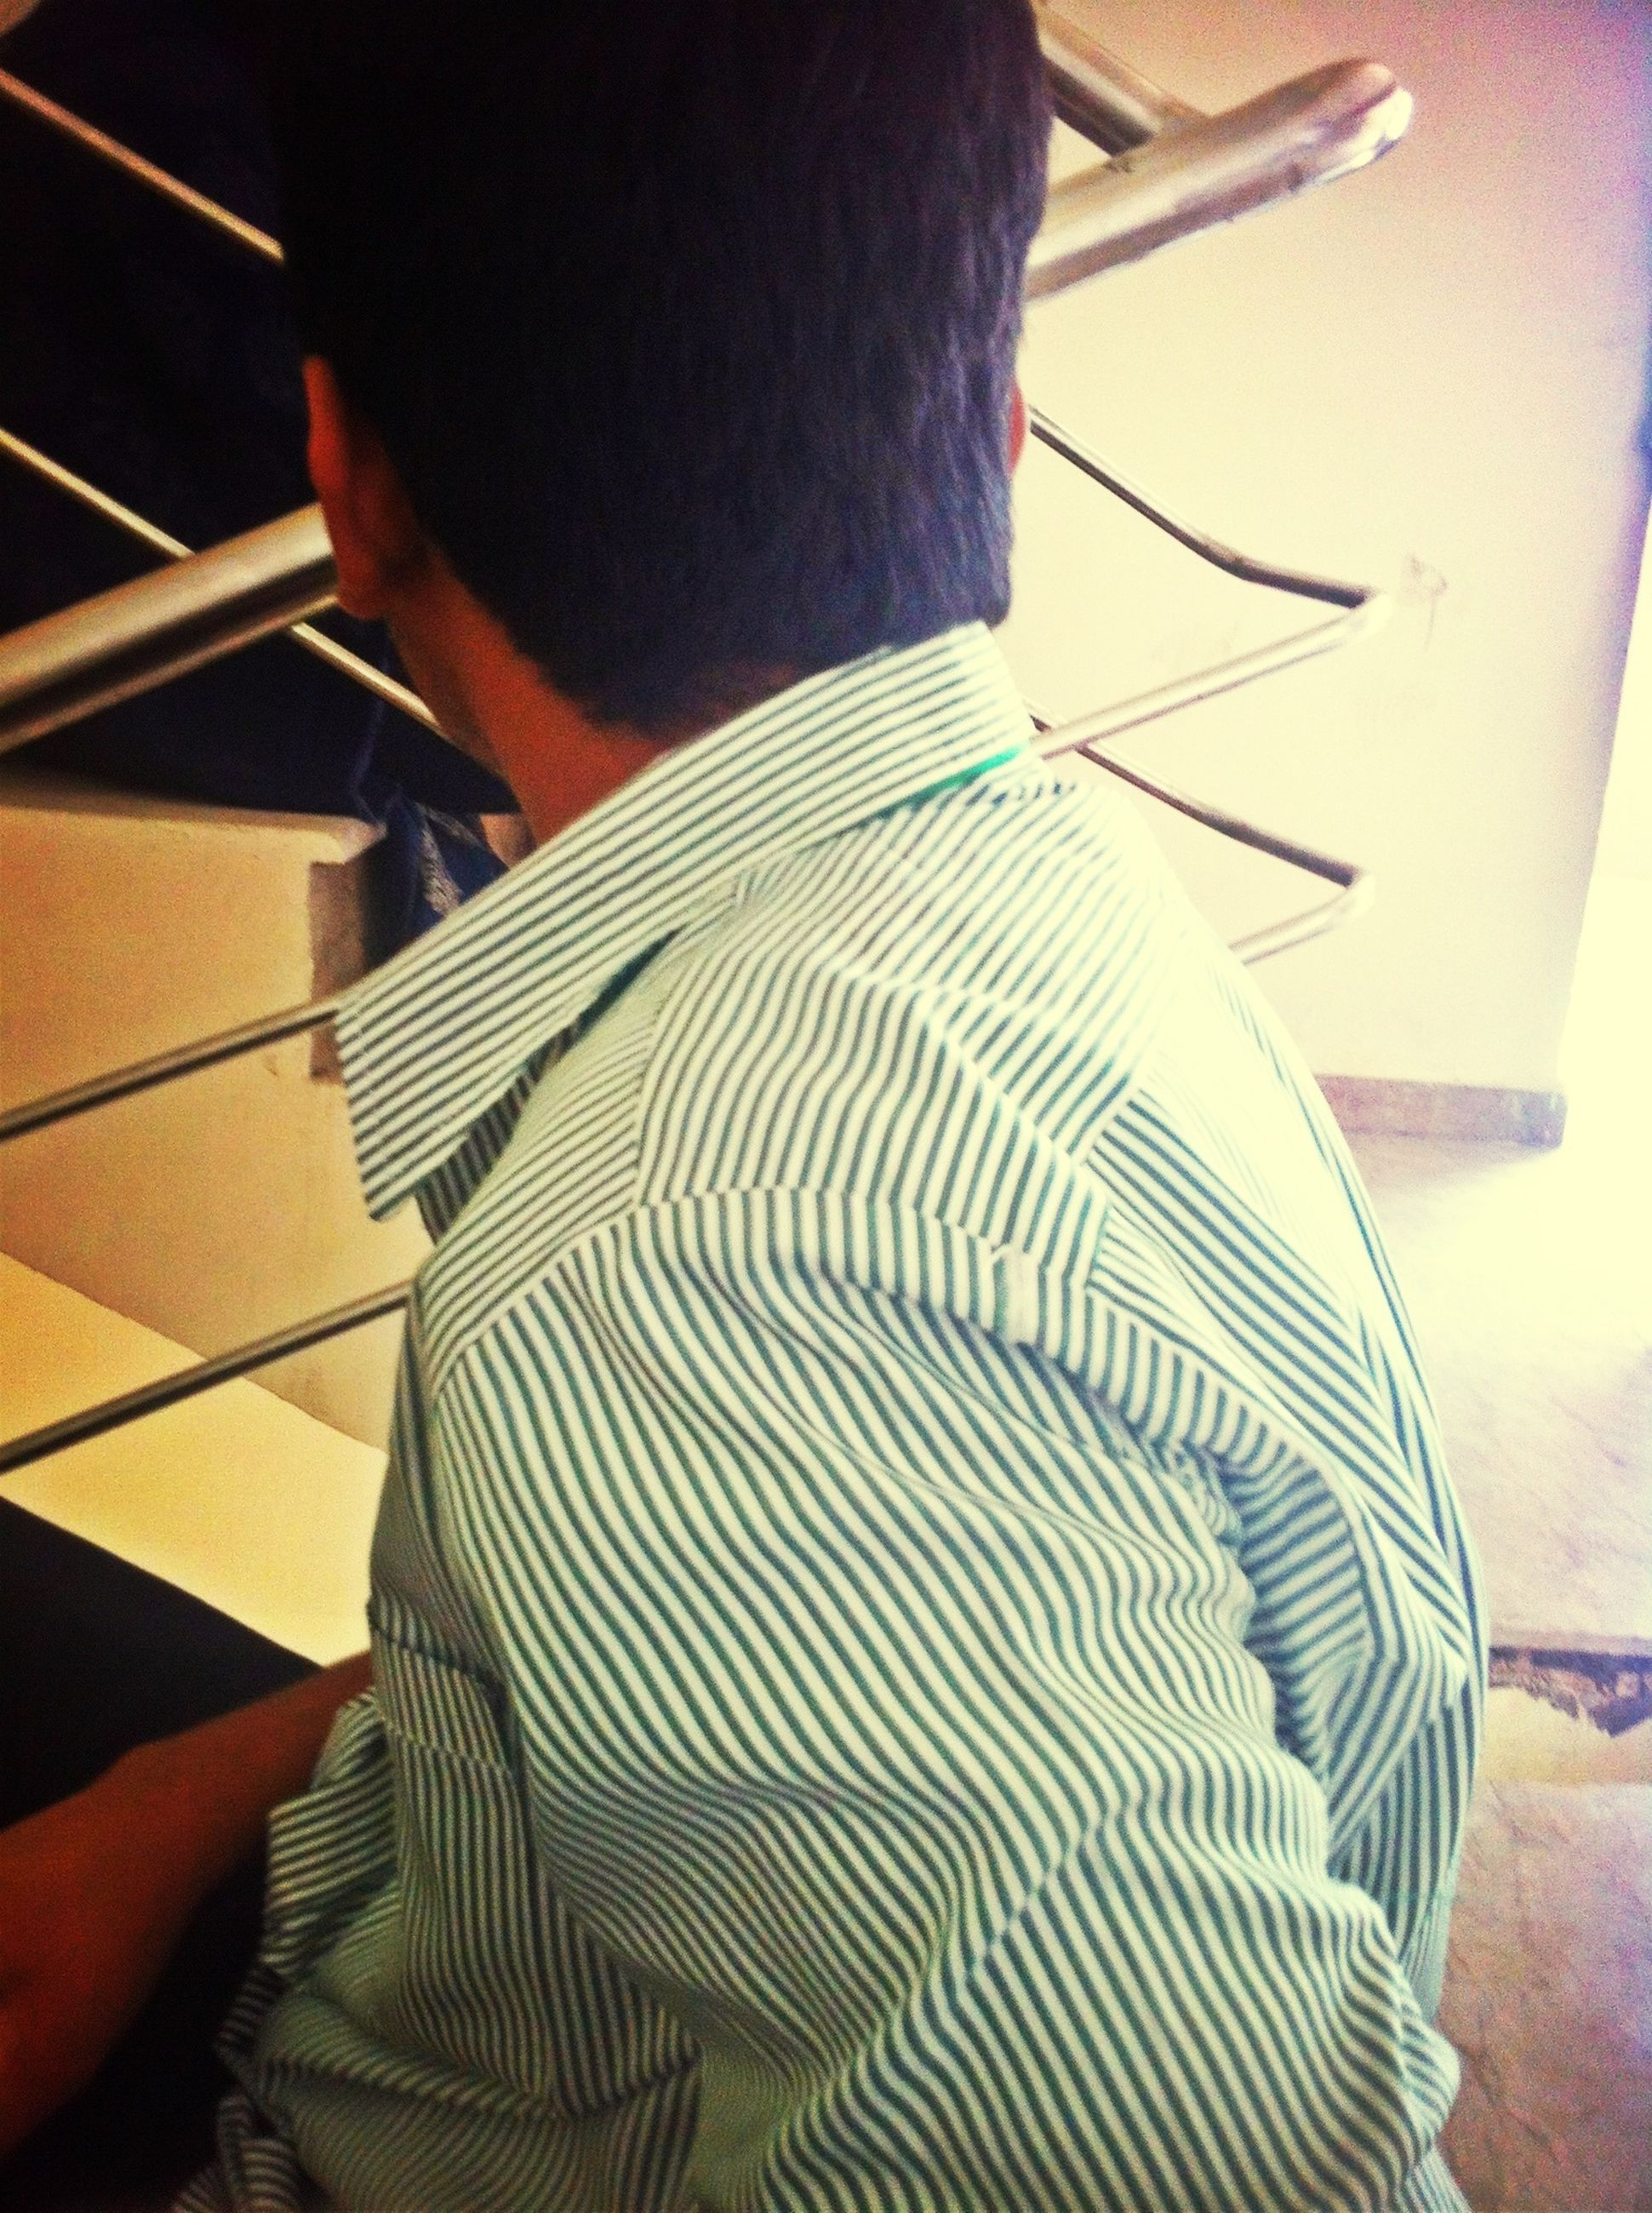 indoors, lifestyles, men, low section, leisure activity, part of, unrecognizable person, person, high angle view, midsection, casual clothing, shadow, standing, close-up, sunlight, music